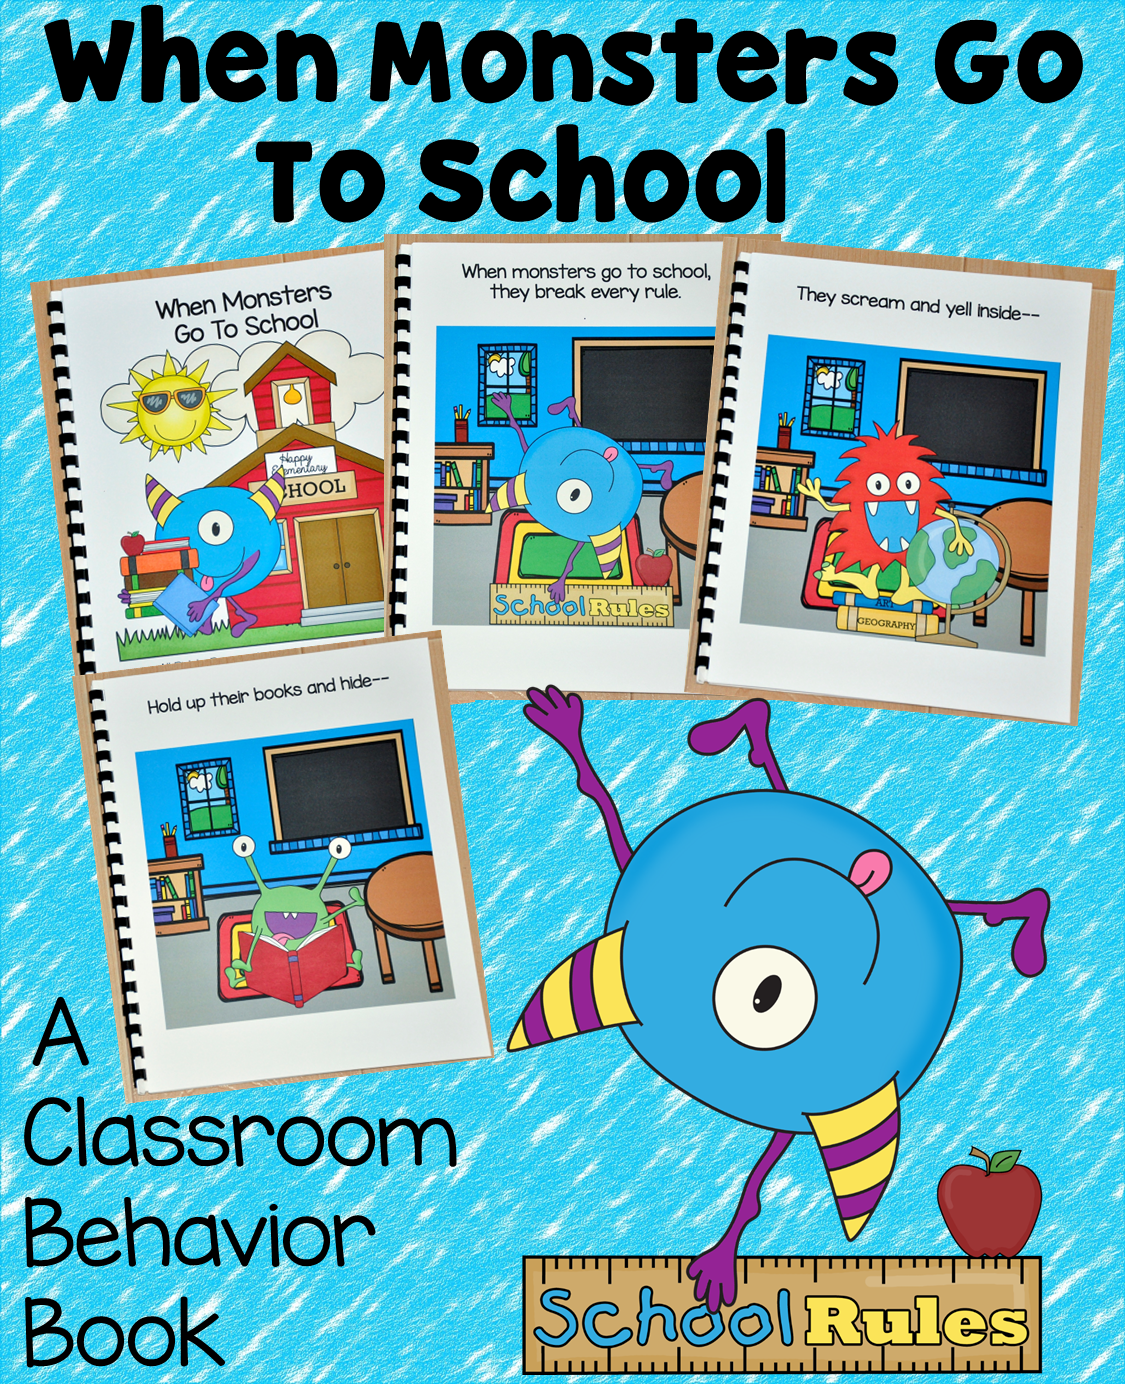 When Monsters Go to School Book